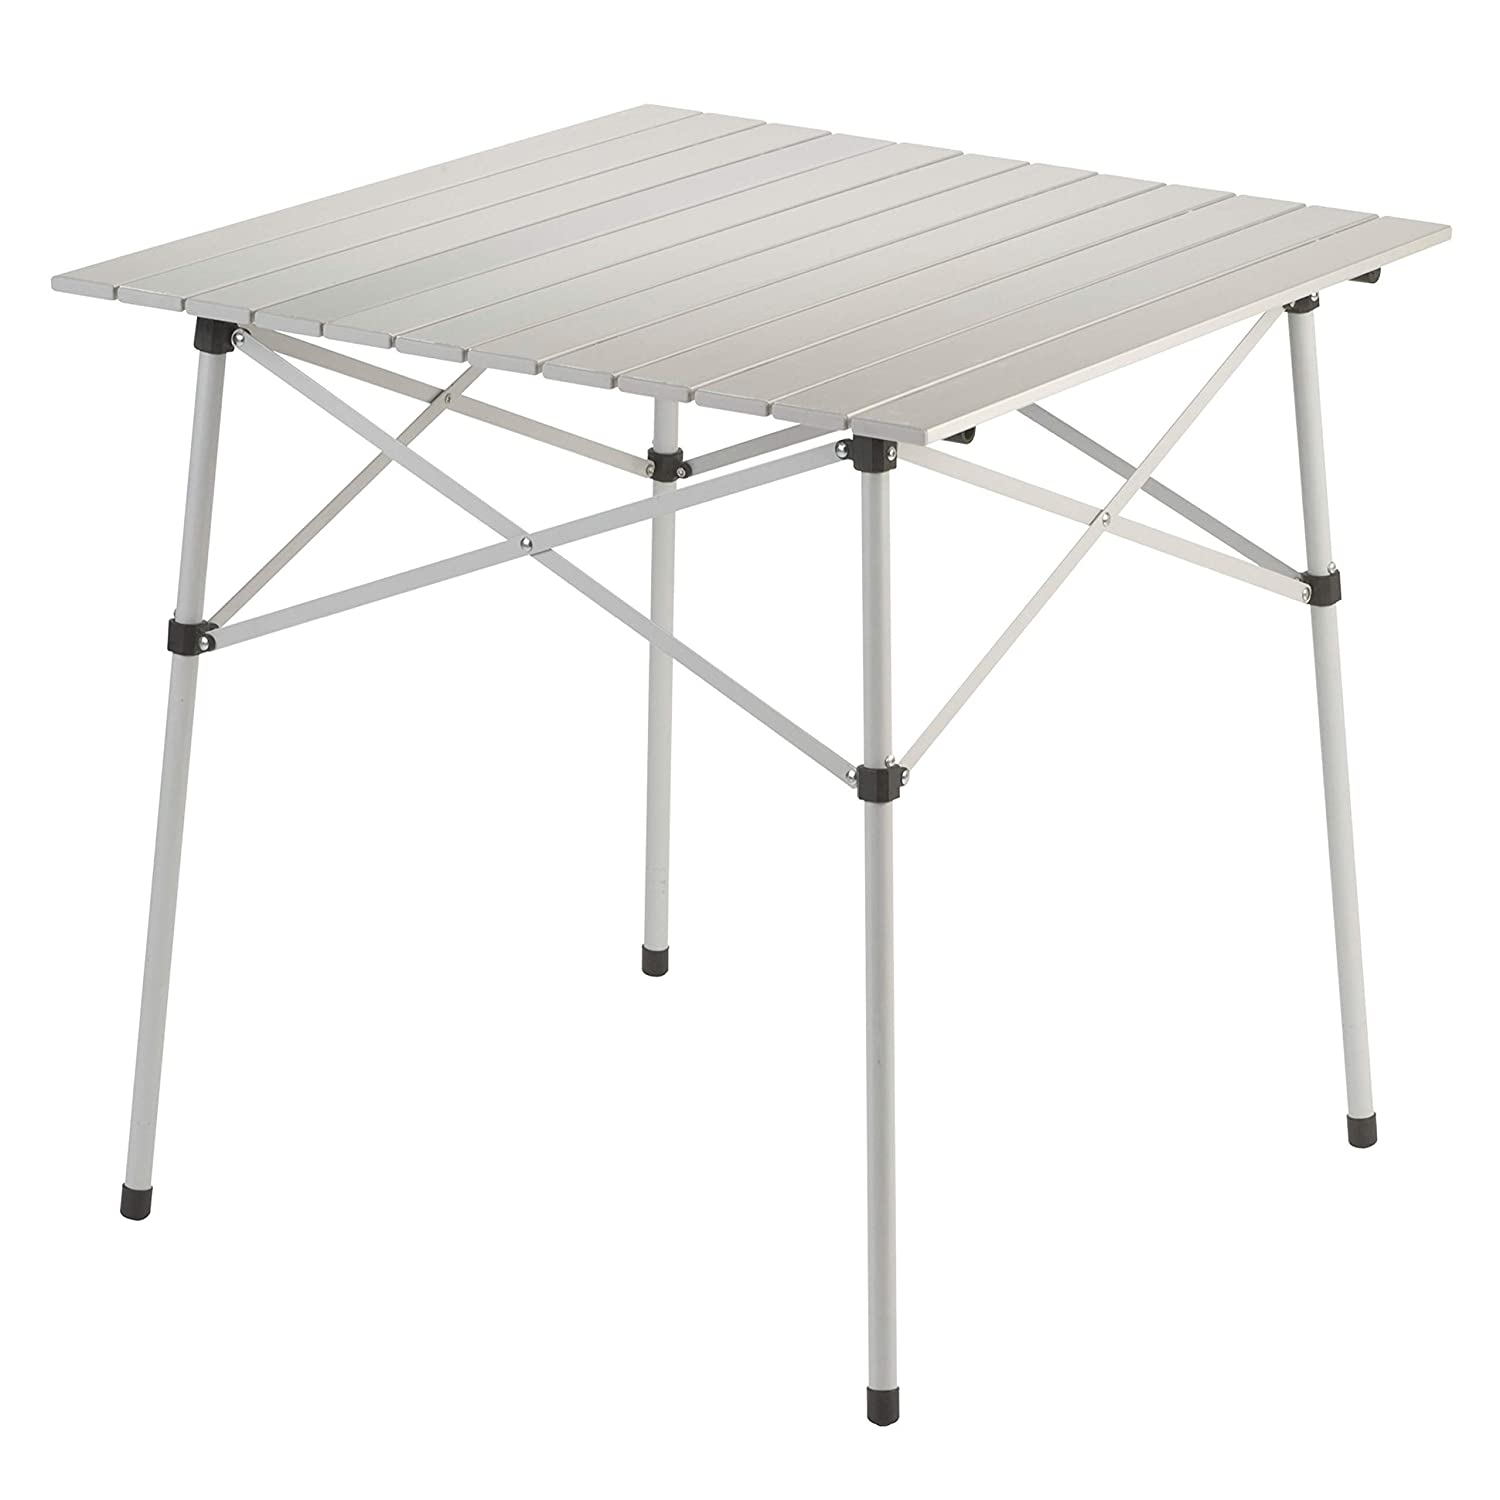 Coleman Unisexs 765203-SSI Outdoor Compact Table 27.5 x 27.5-Inch Multi-Coloured